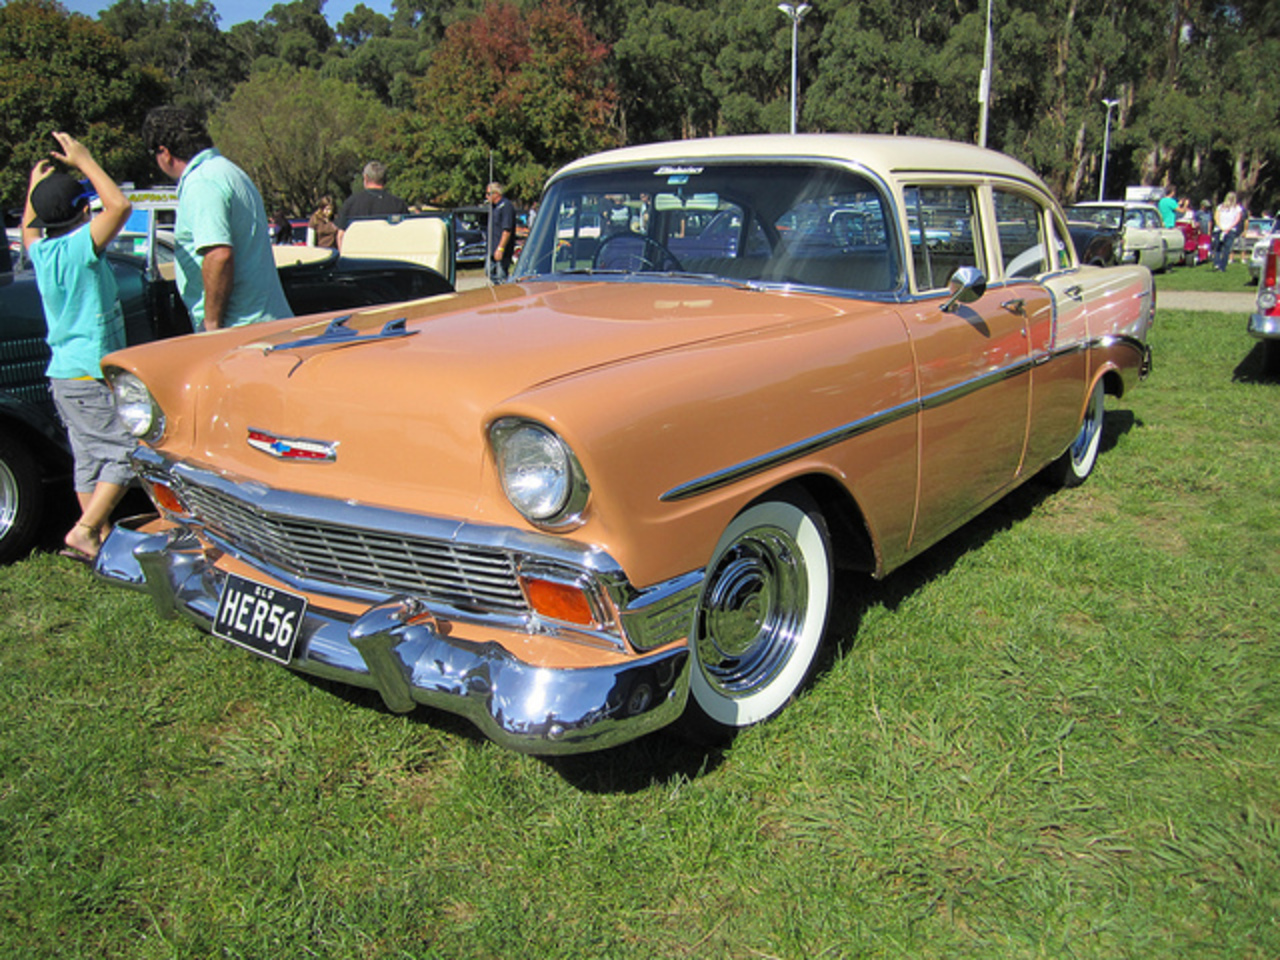 1956 Chevrolet 210 Sedan. The 1955 Chevrolet got a new chassis and new